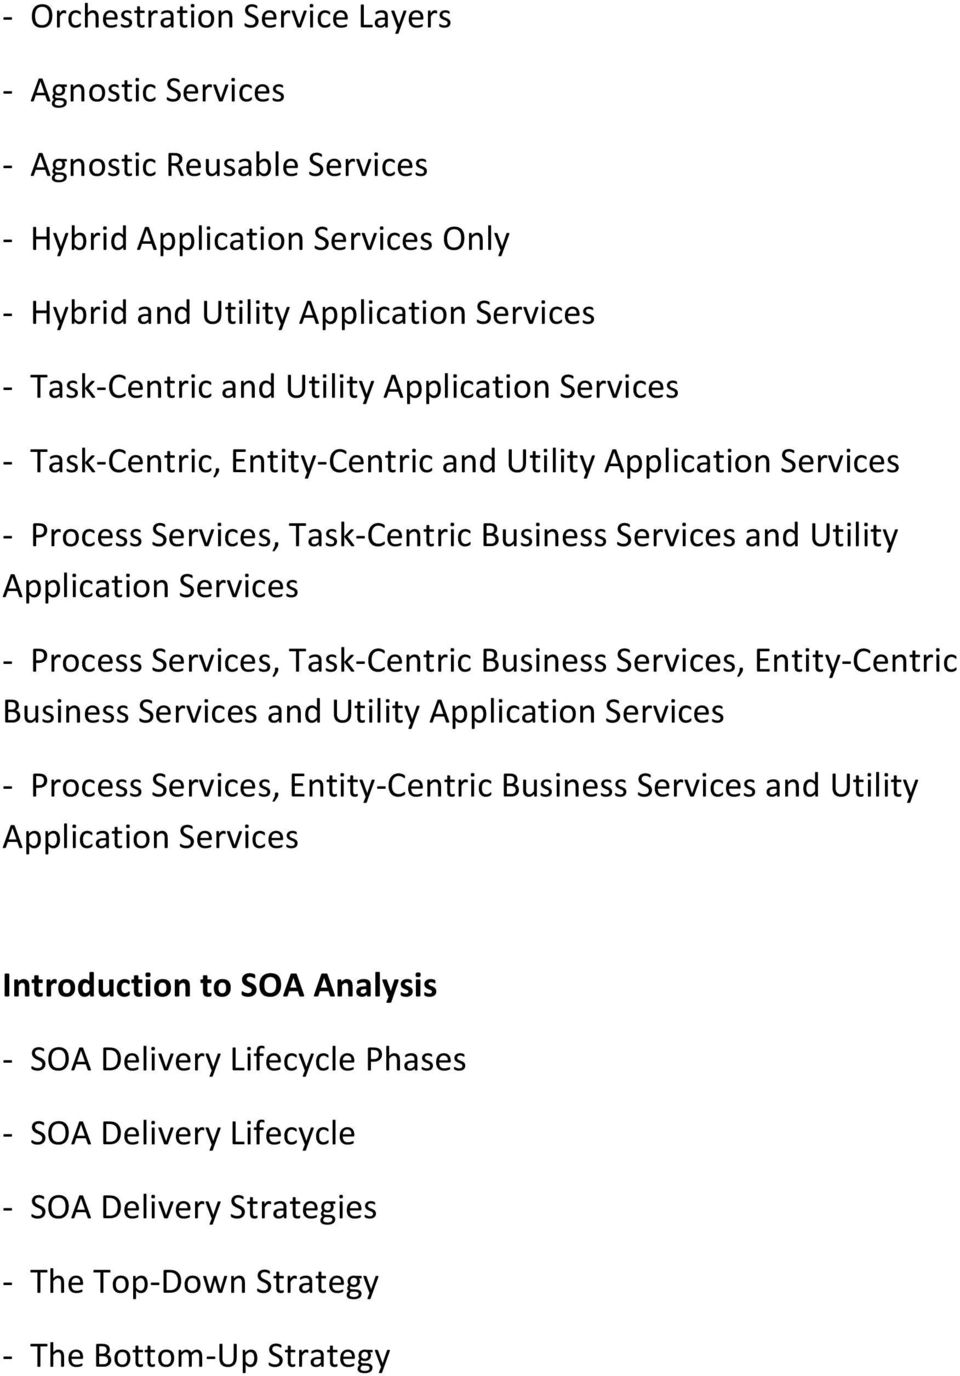 Process Services, Task-Centric Business Services, Entity-Centric Business Services and Utility Application Services - Process Services, Entity-Centric Business Services and